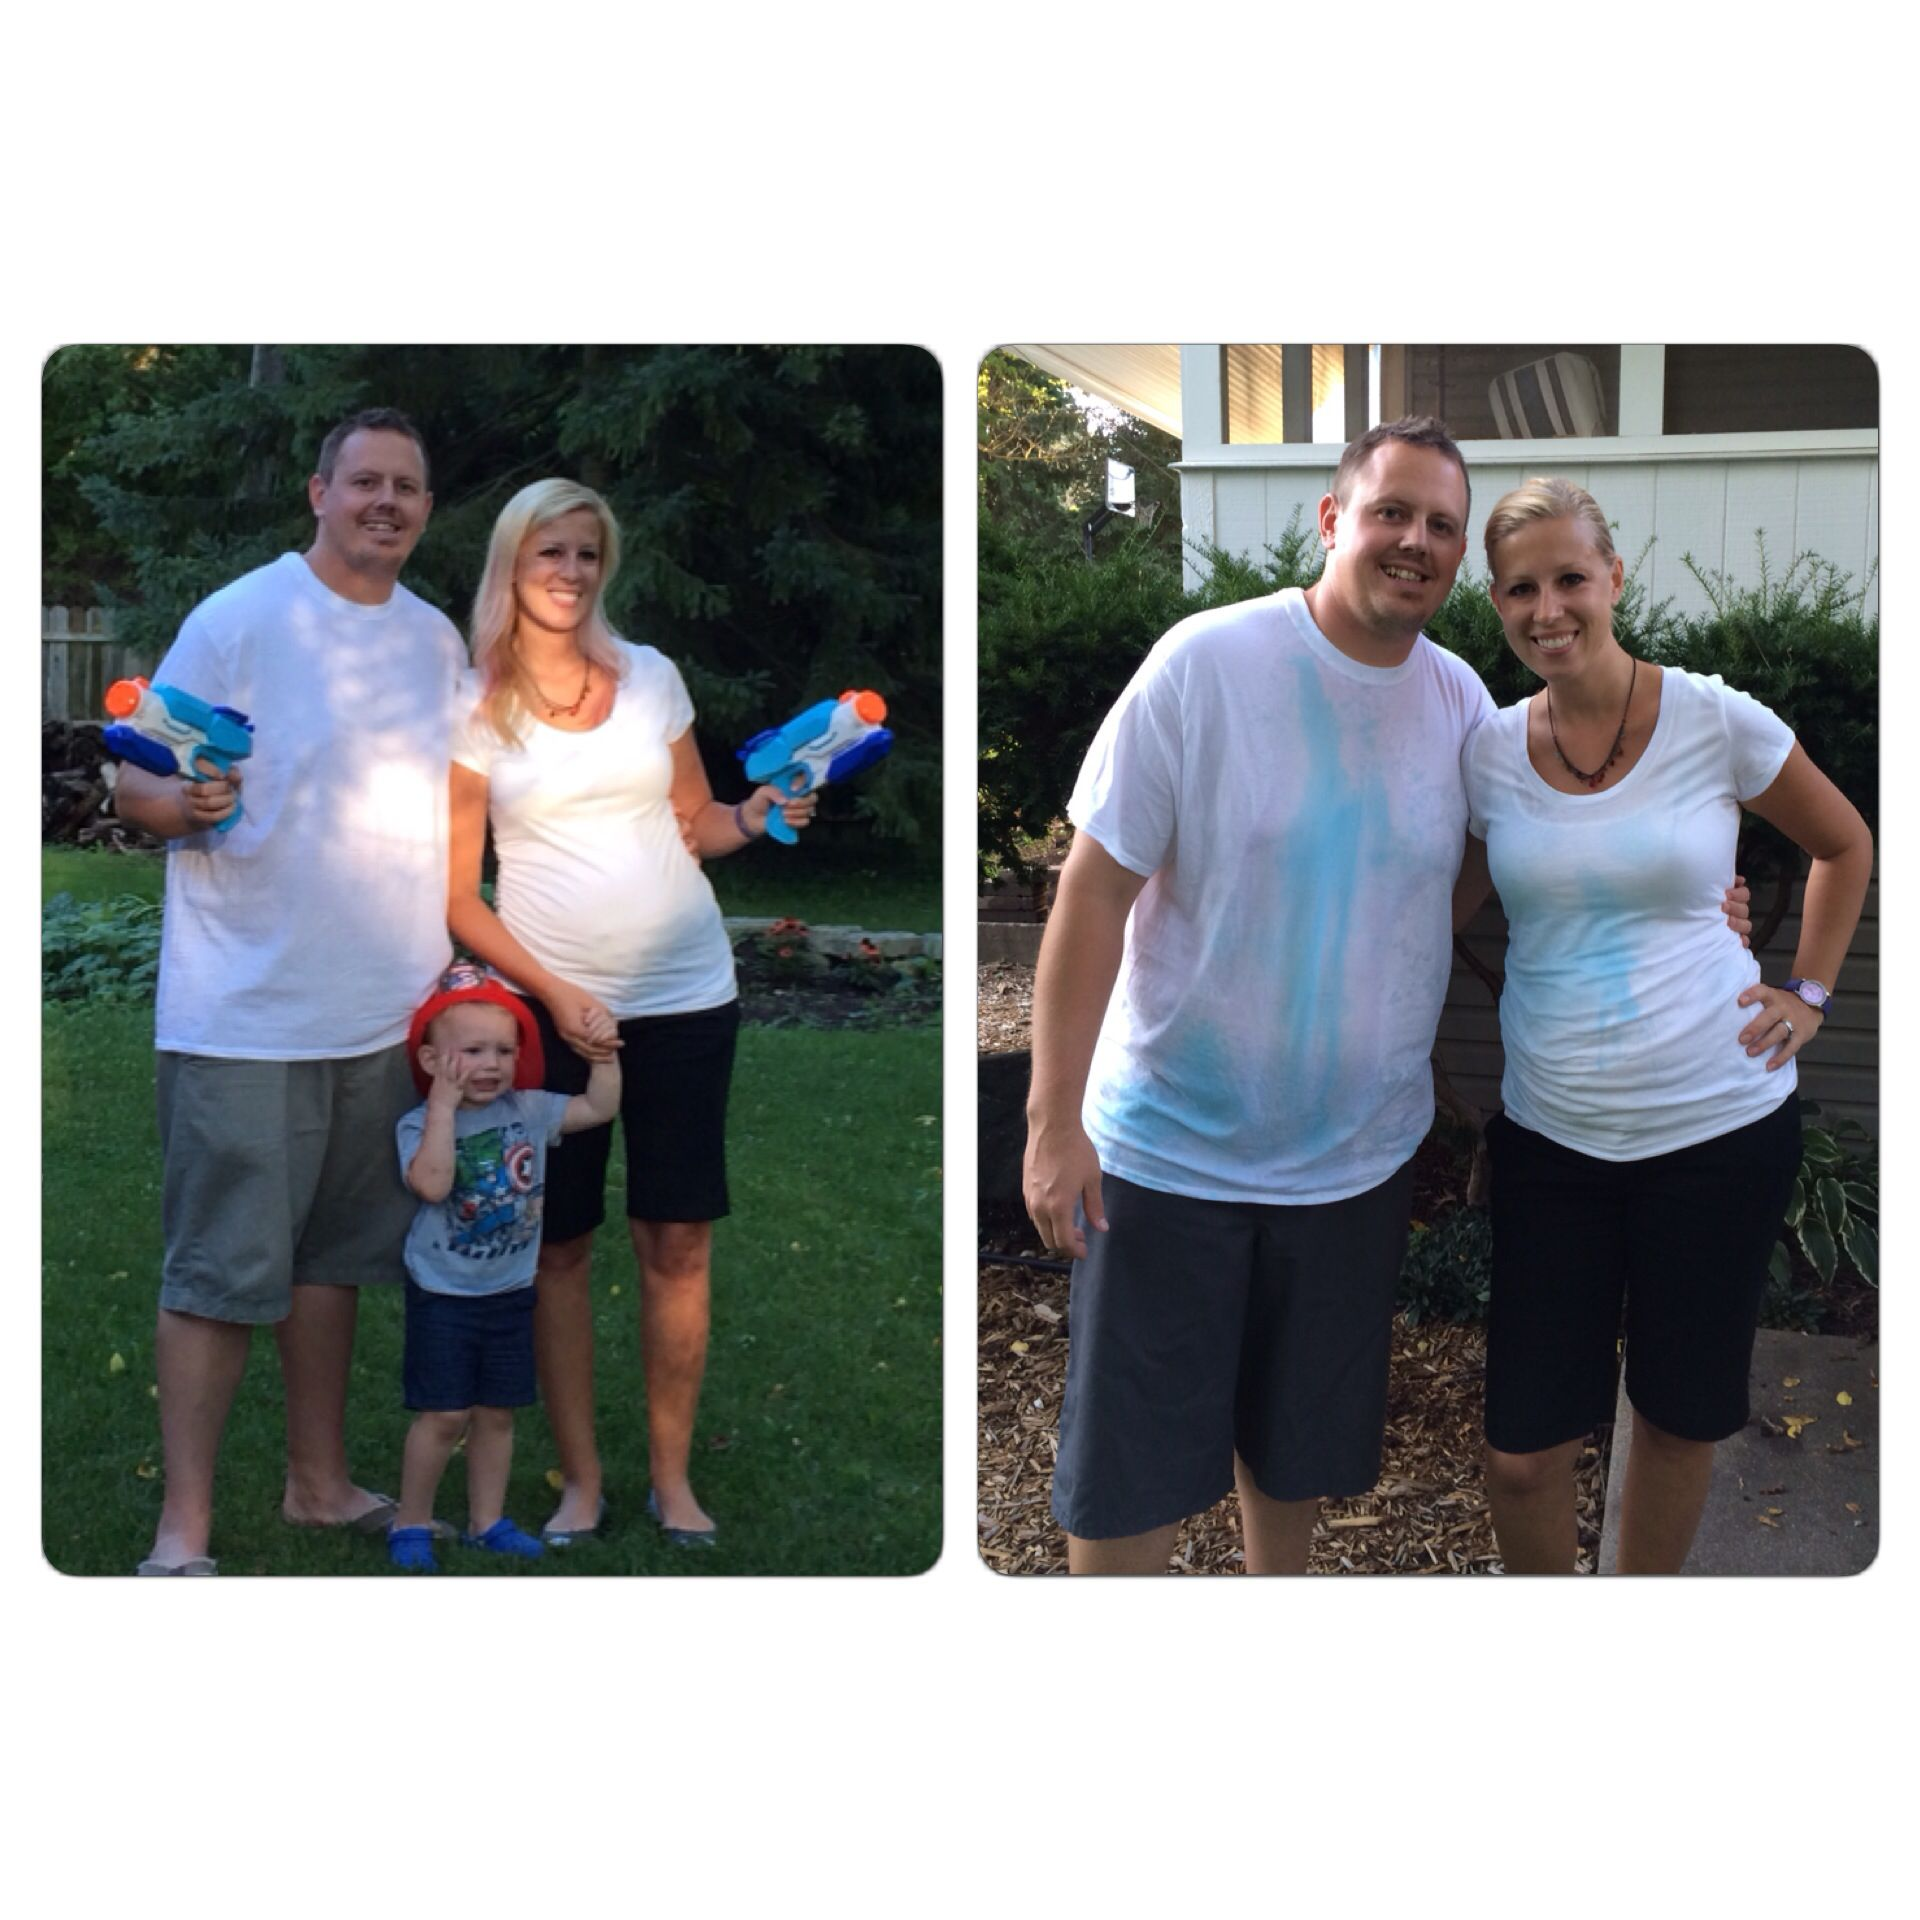 Baby gender reveal using super soaker water gun filled with blue or